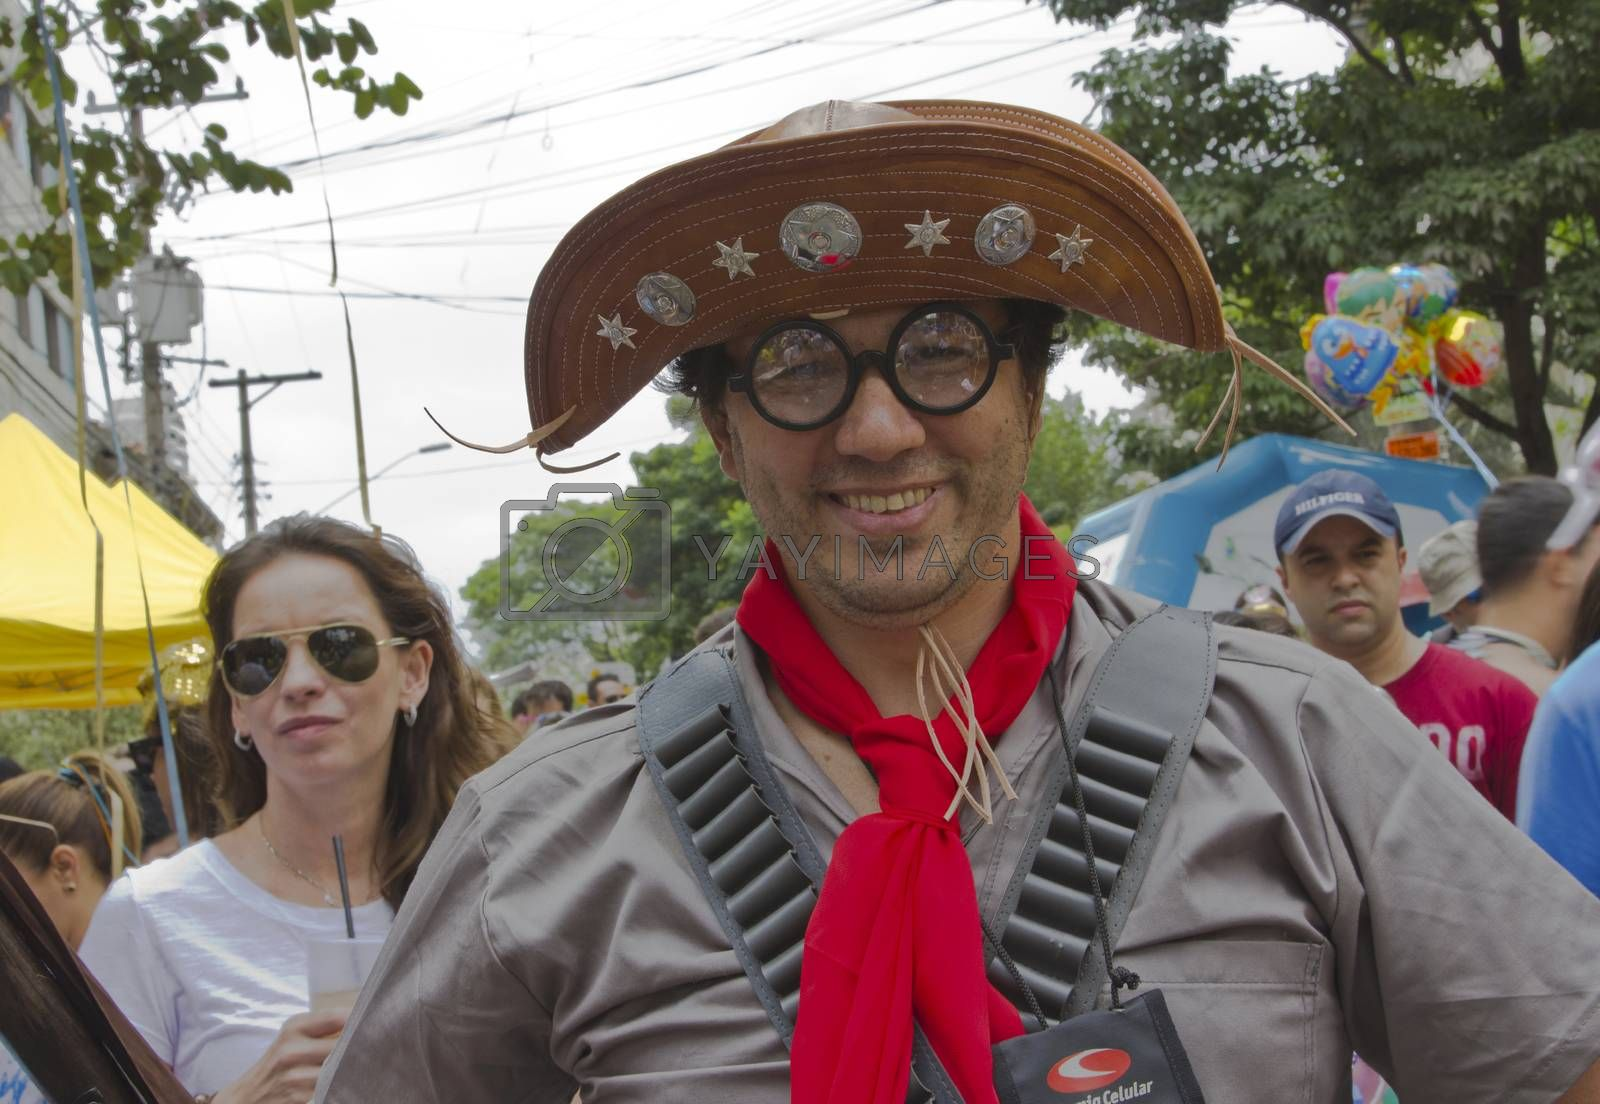 SAO PAULO, BRAZIL - JANUARY 31, 2015: An unidentified man dressed like a old outlaw participate in the annual Brazilian street carnival dancing and singing samba.